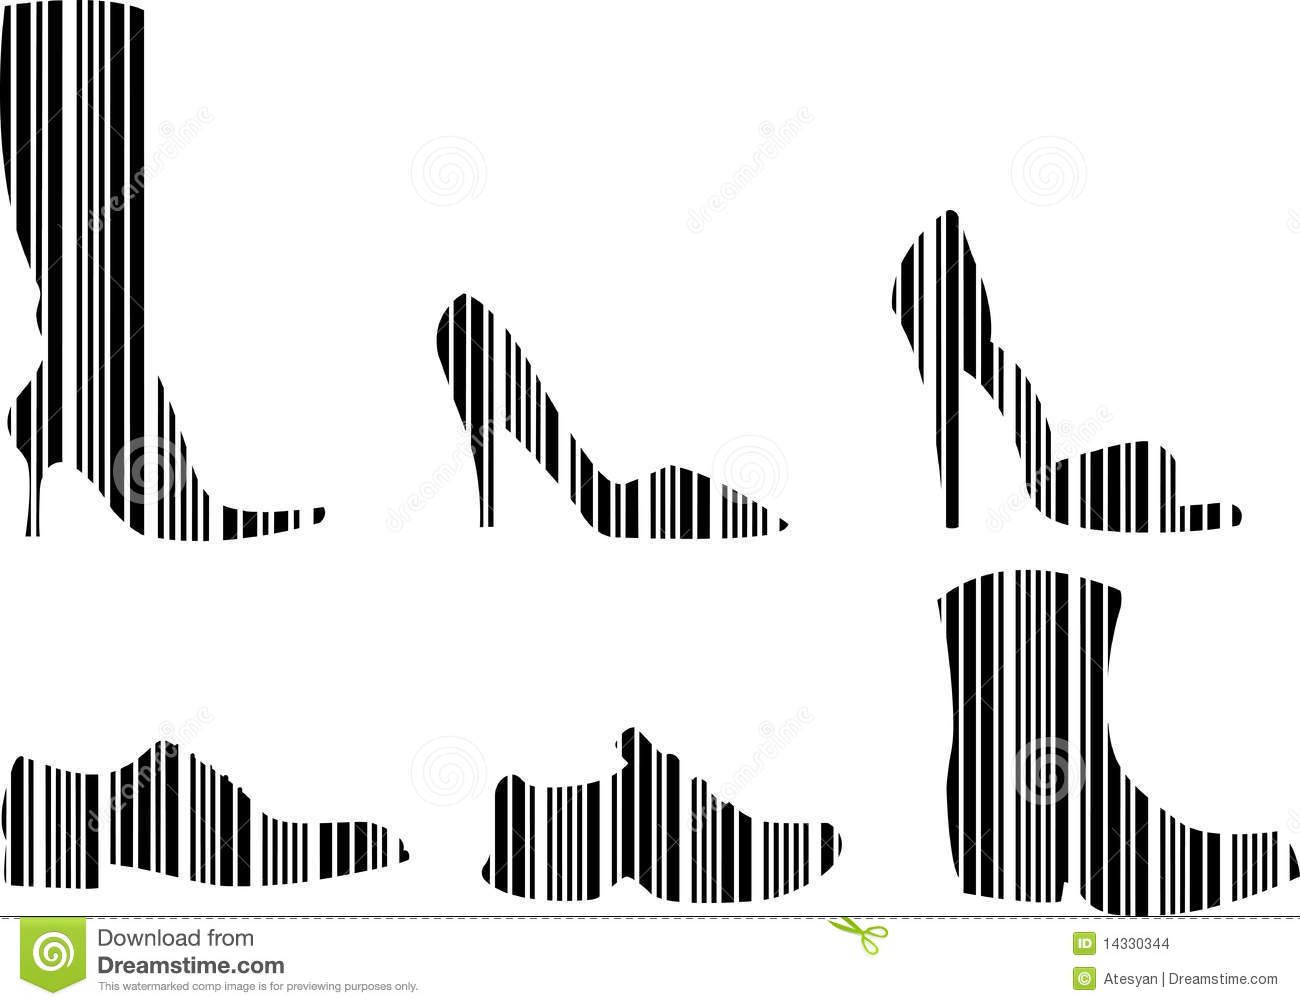 Shop for your next pair of Barcode shoes on Zazzle. Order some of our sneakers, or slip your feet into a pair of our flip flops.